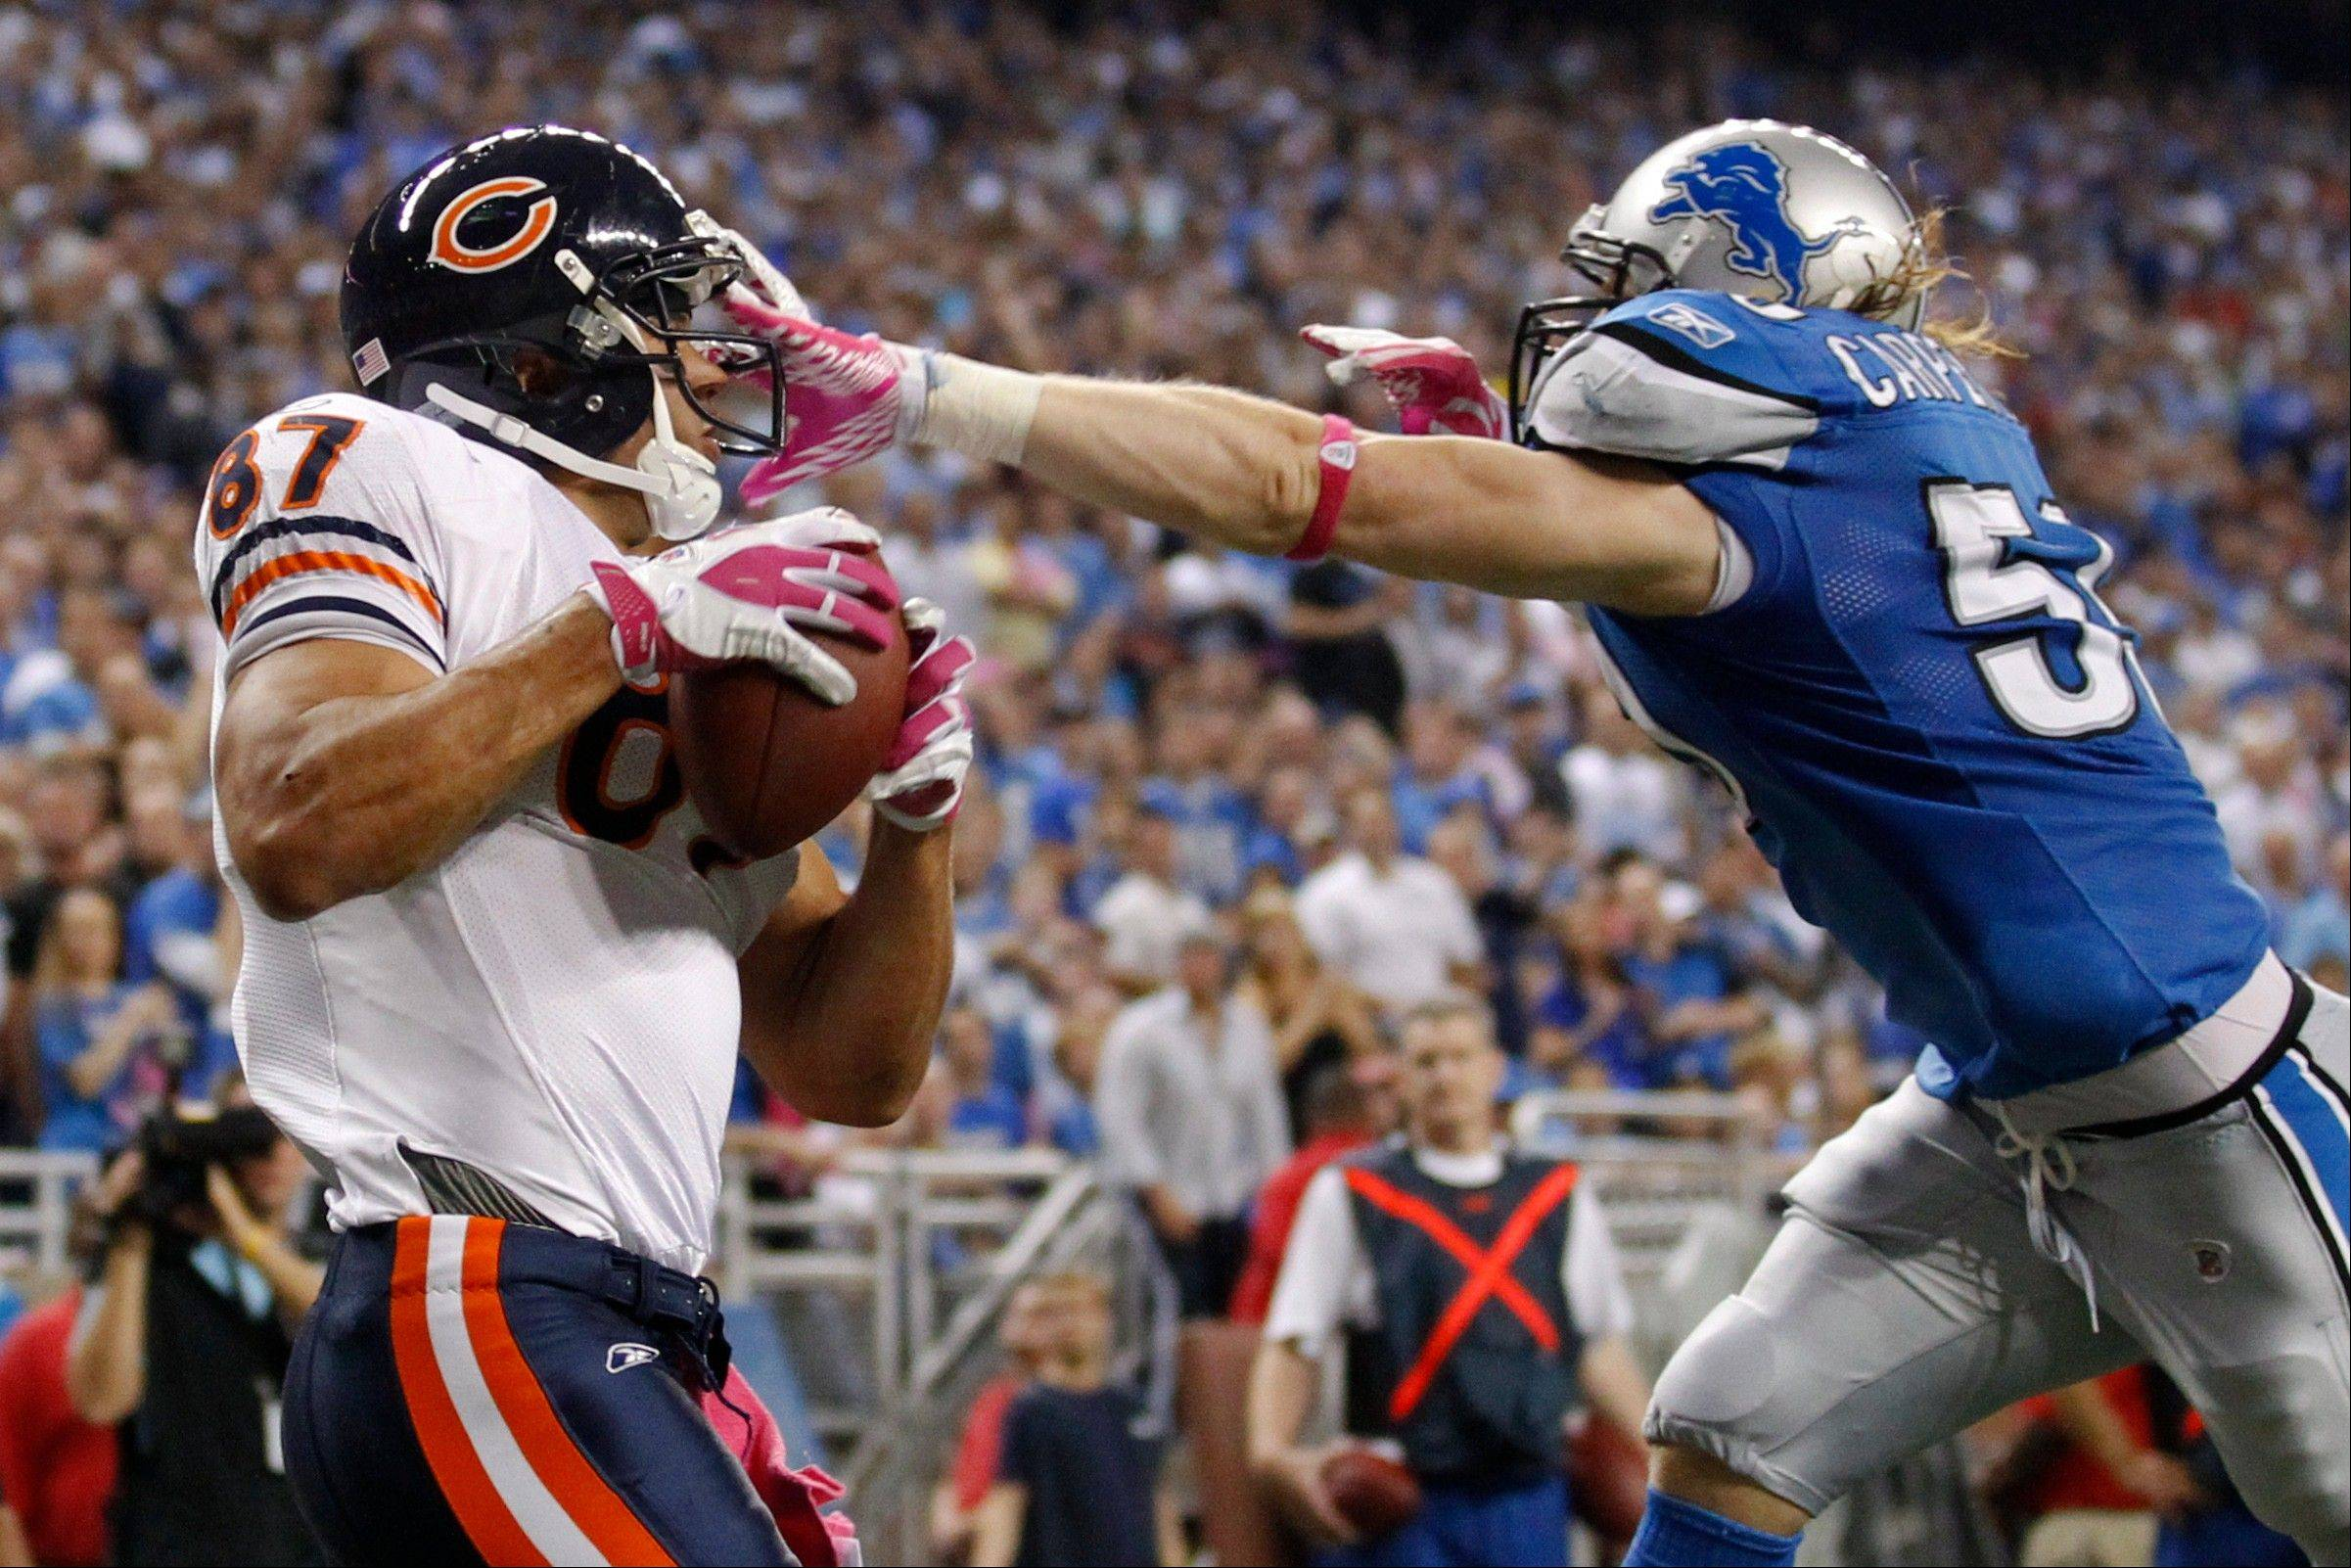 Chicago Bears tight end Kellen Davis (87) makes a 9-yard reception for a touchdown Monday as Detroit Lions outside linebacker Bobby Carpenter (59) defends in the second quarter of a game in Detroit.